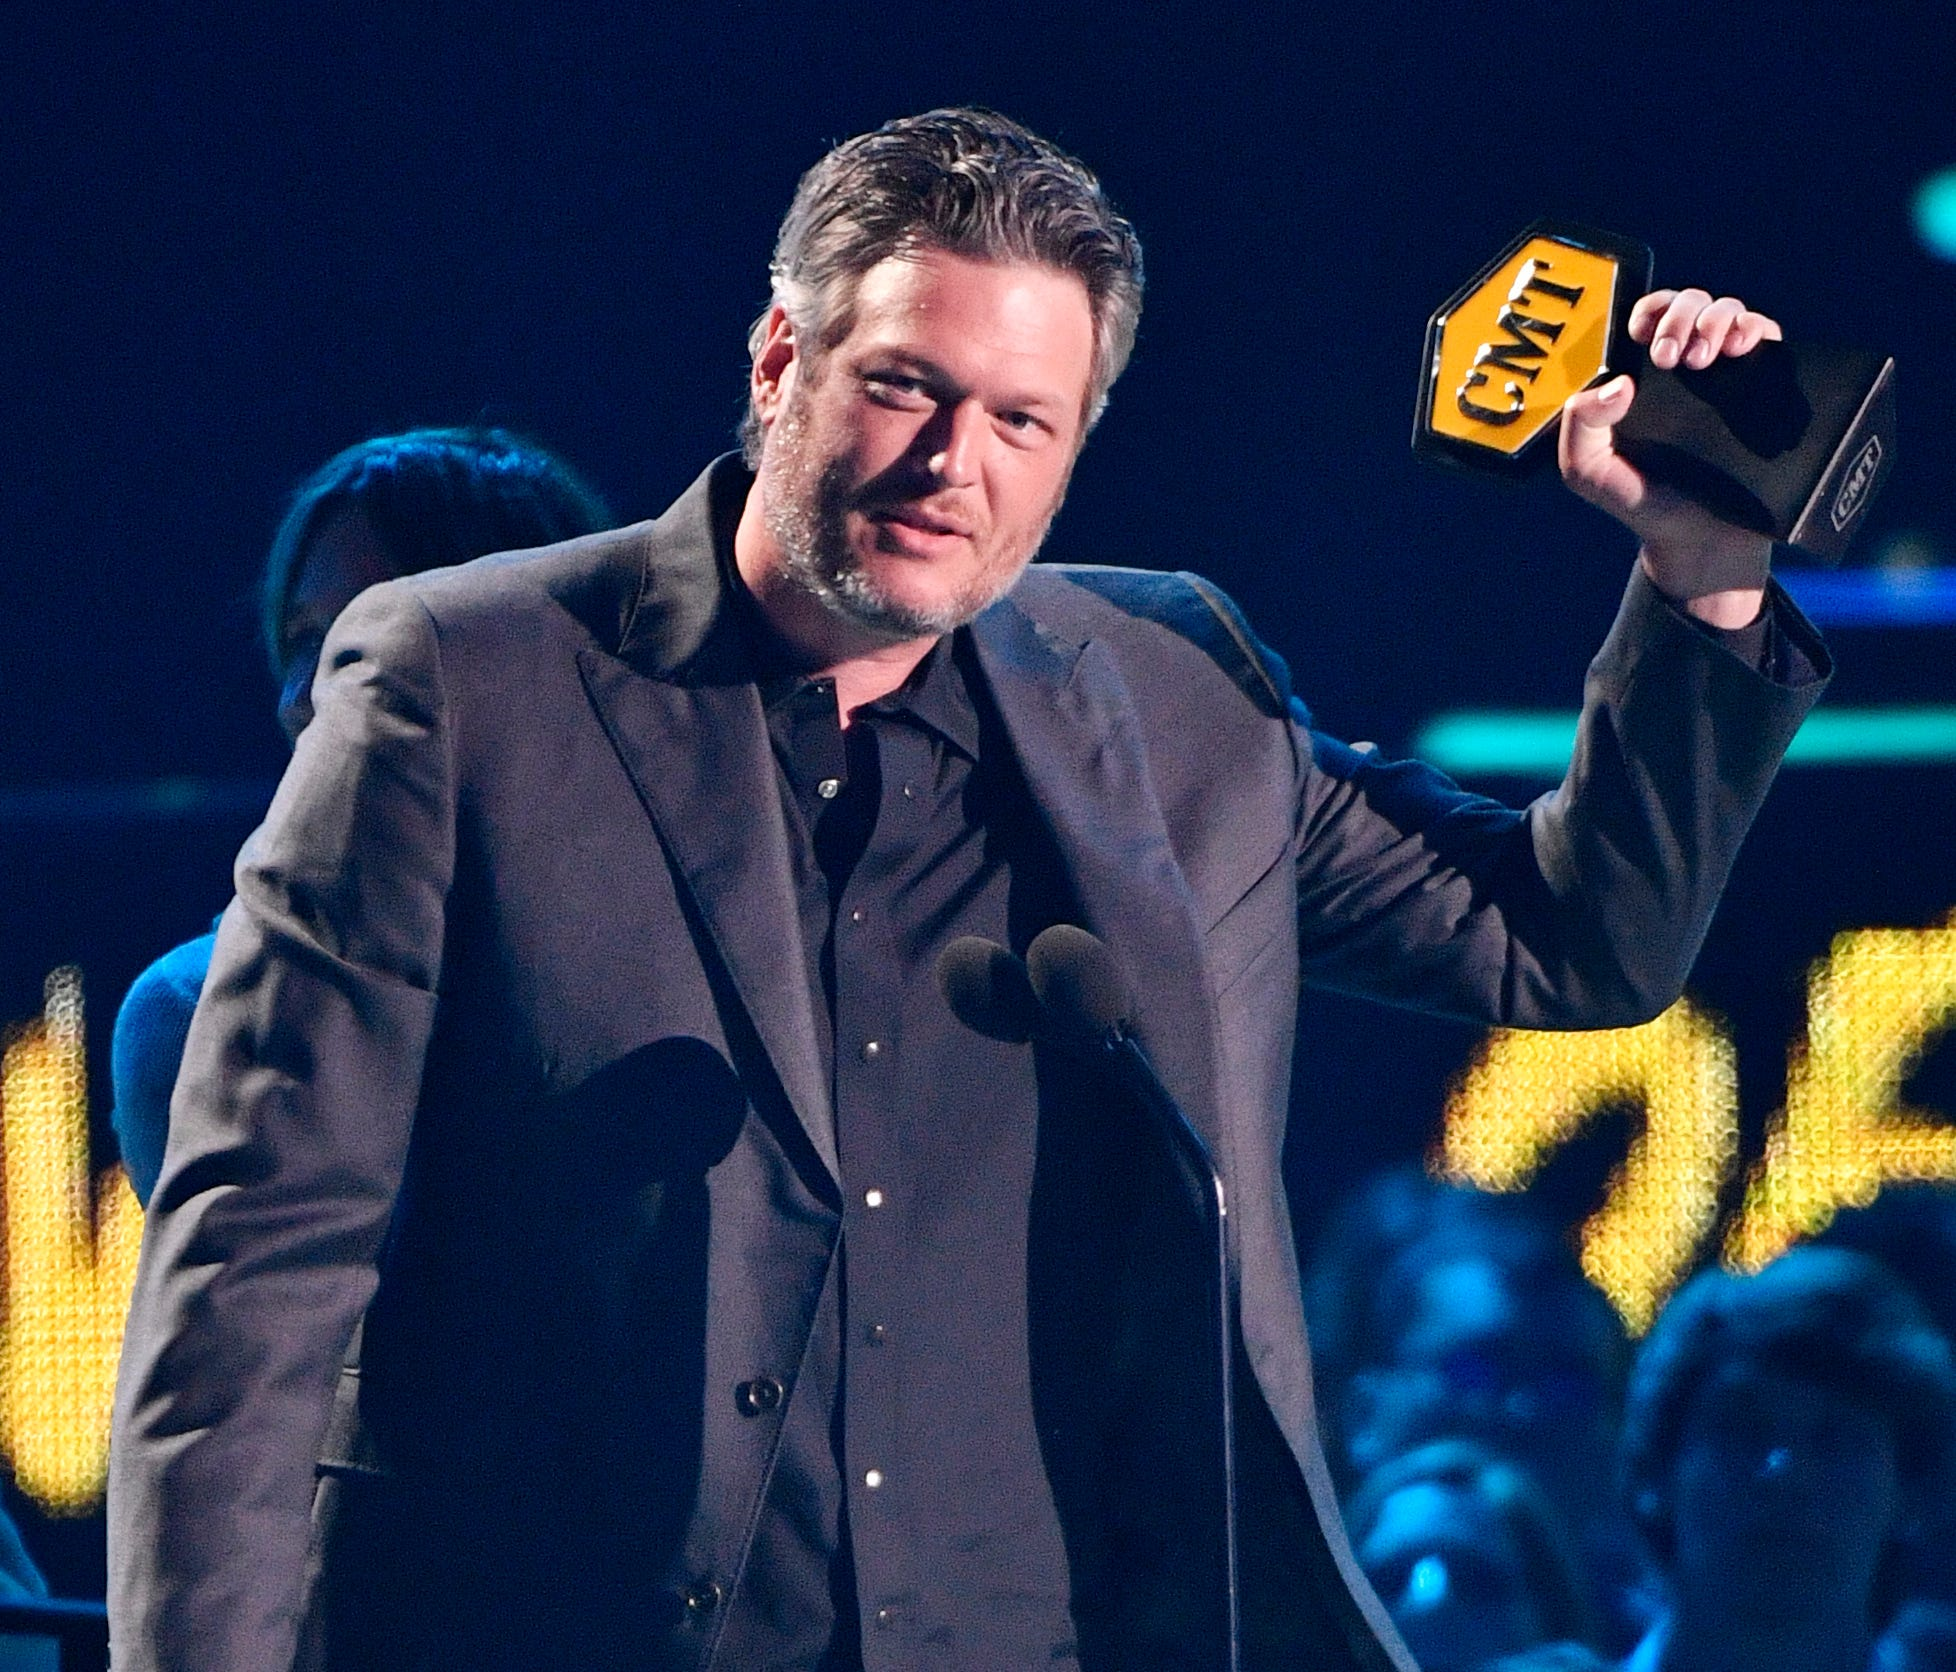 Blake Shelton accepts the Video of the Year award at the 2018 CMT Awards Wednesday, June 6, 2018, at Bridgestone Arena in Nashville, Tenn.